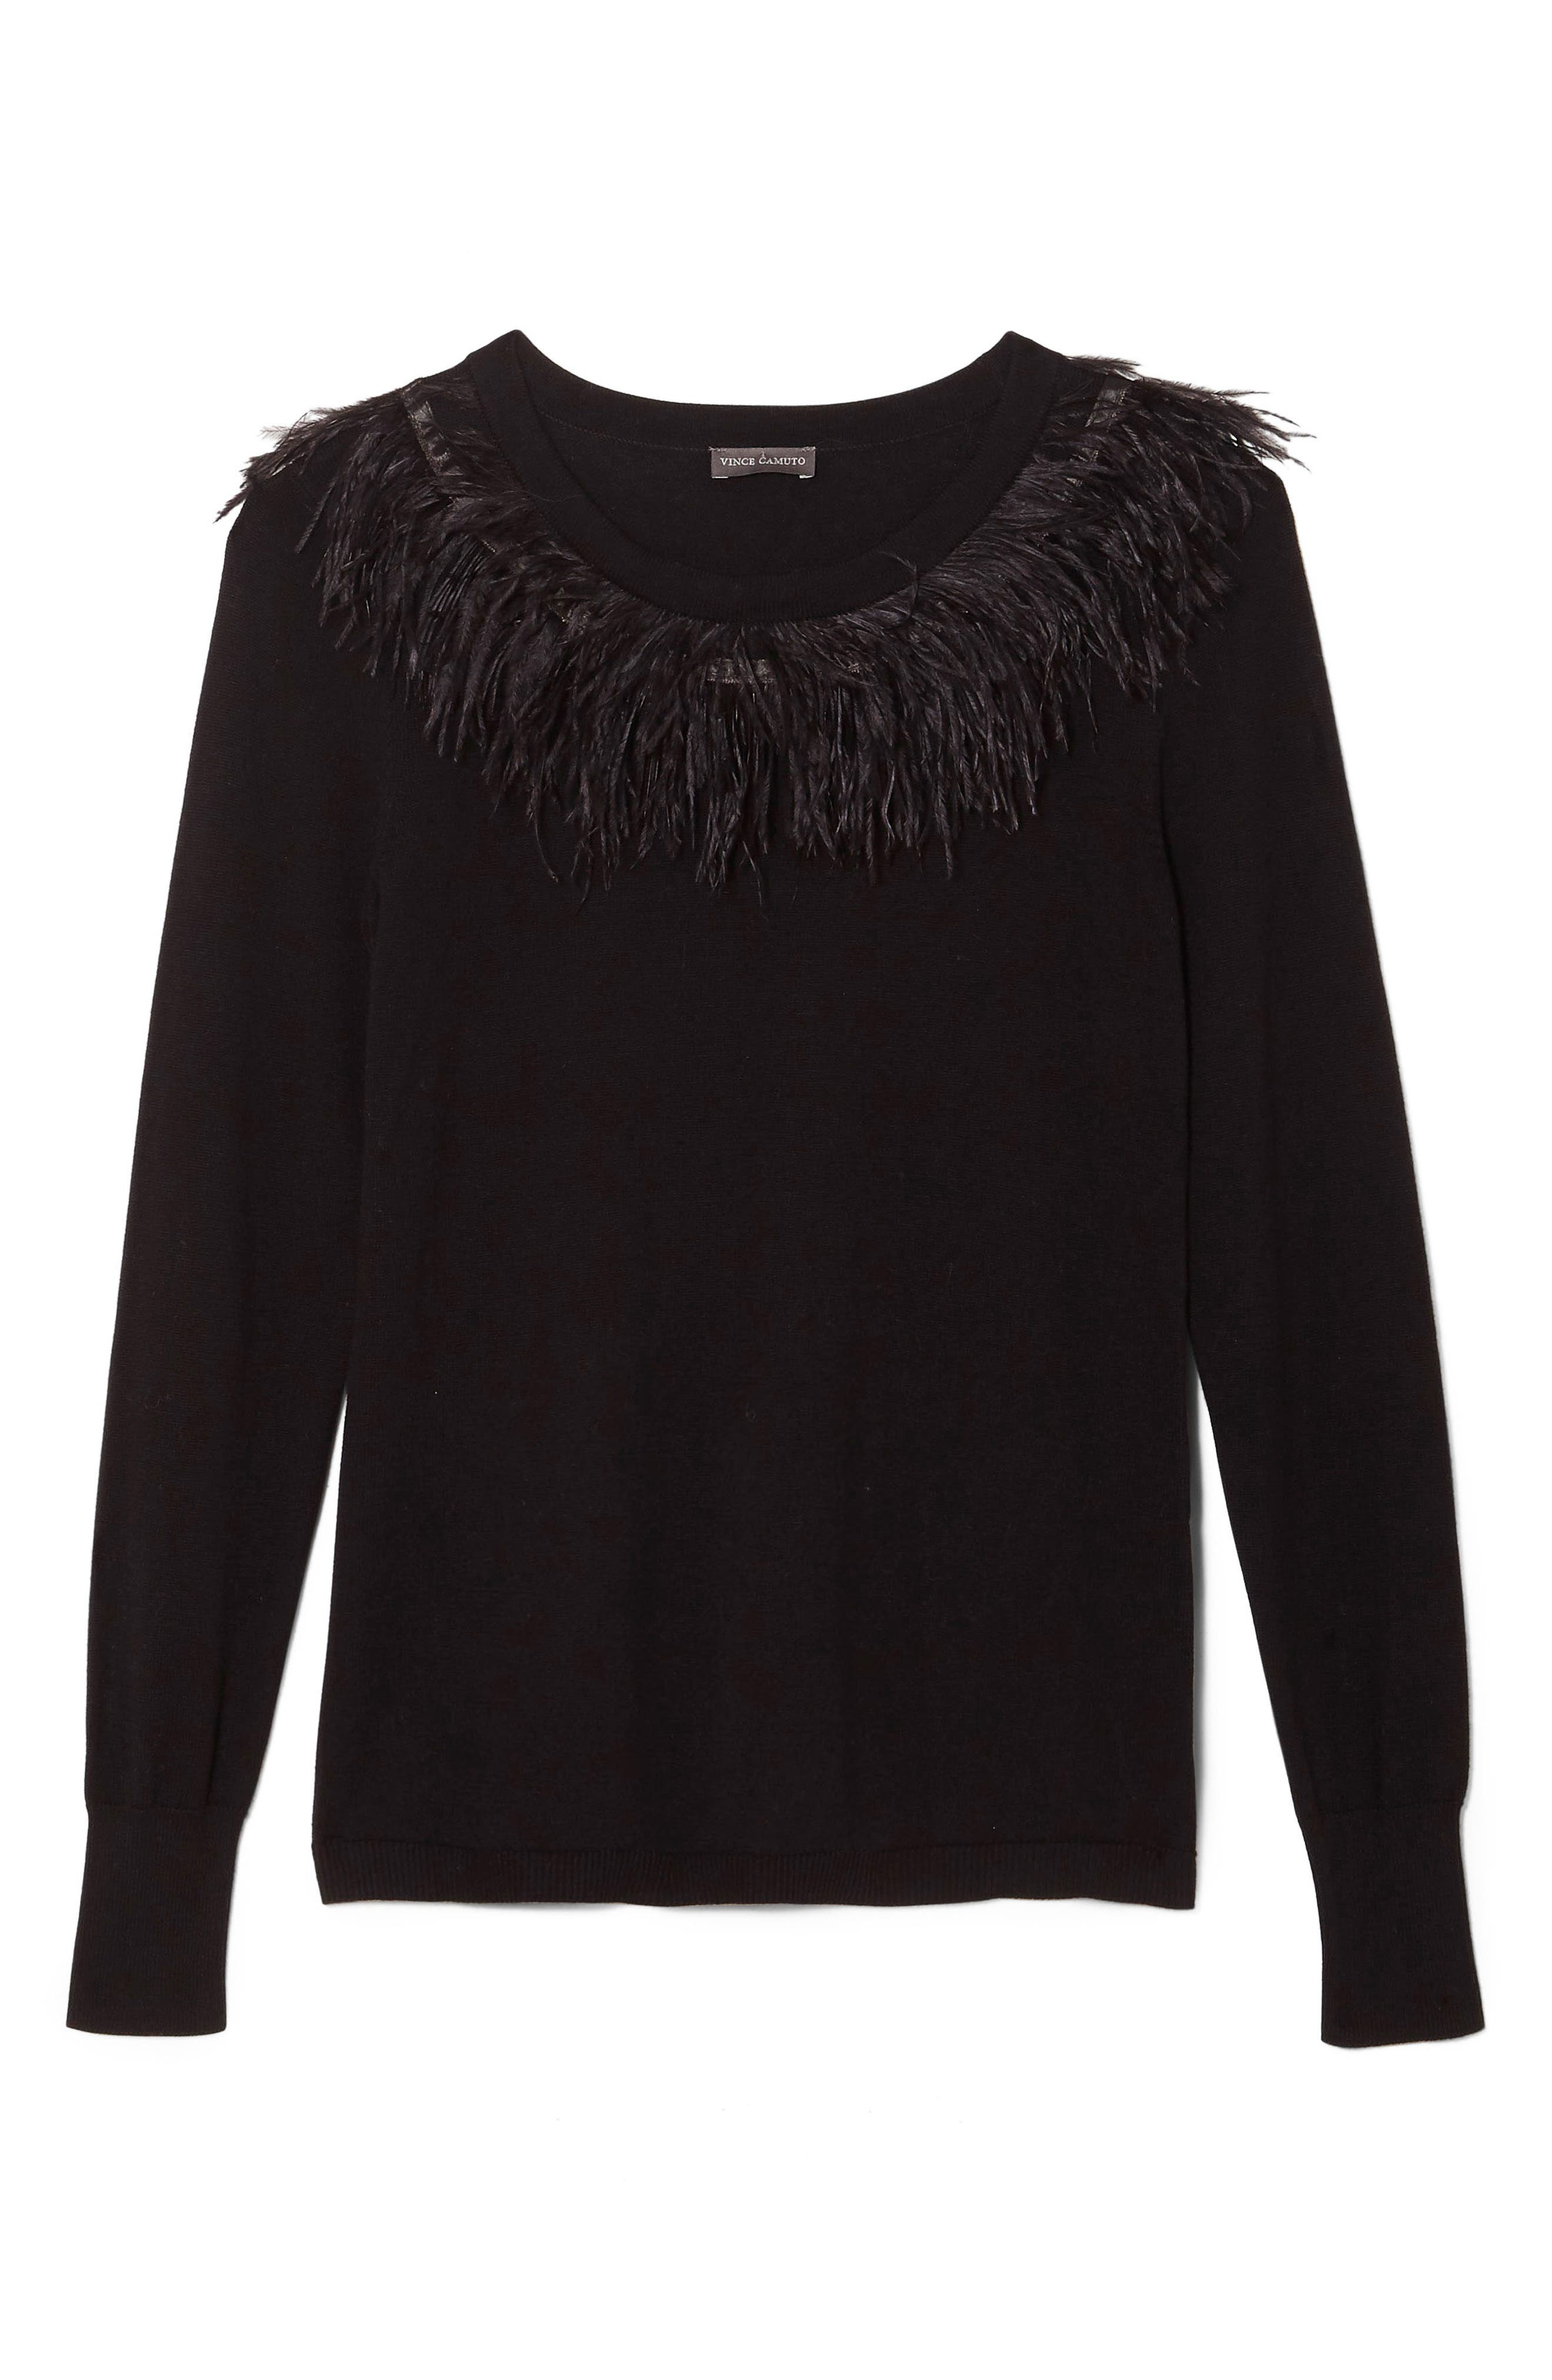 VINCE CAMUTO,                             Feather Collar Sweater,                             Alternate thumbnail 6, color,                             006